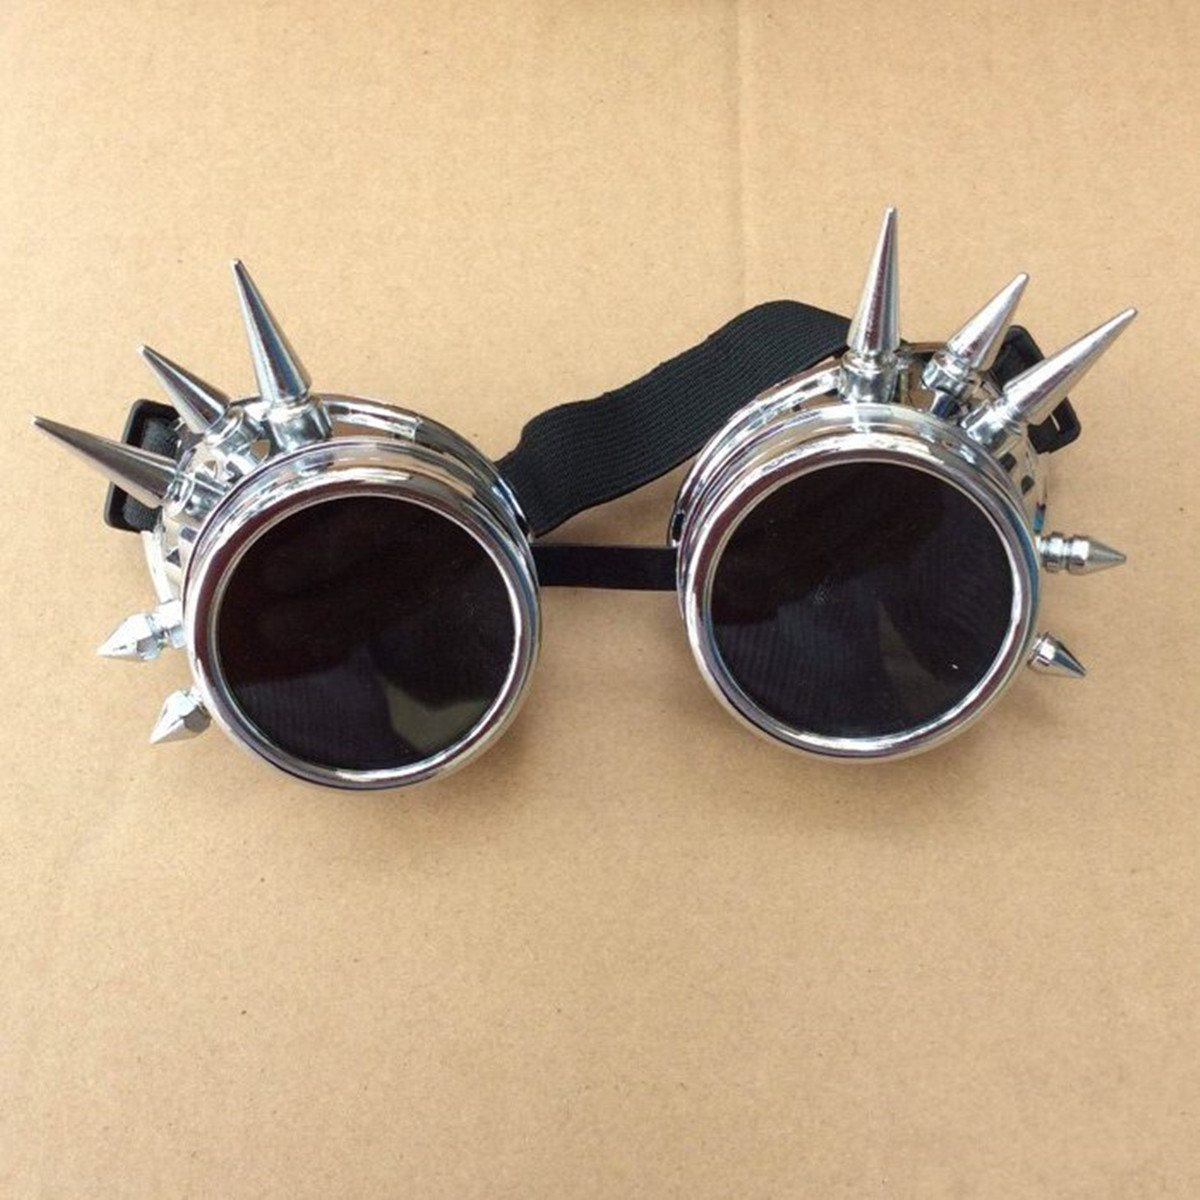 NEW Fashion Silver Steampunk Goggles Spikey Burning Man Costume Cosplay Gothic Punk  Safety GogglesNEW Fashion Silver Steampunk Goggles Spikey Burning Man Costume Cosplay Gothic Punk  Safety Goggles